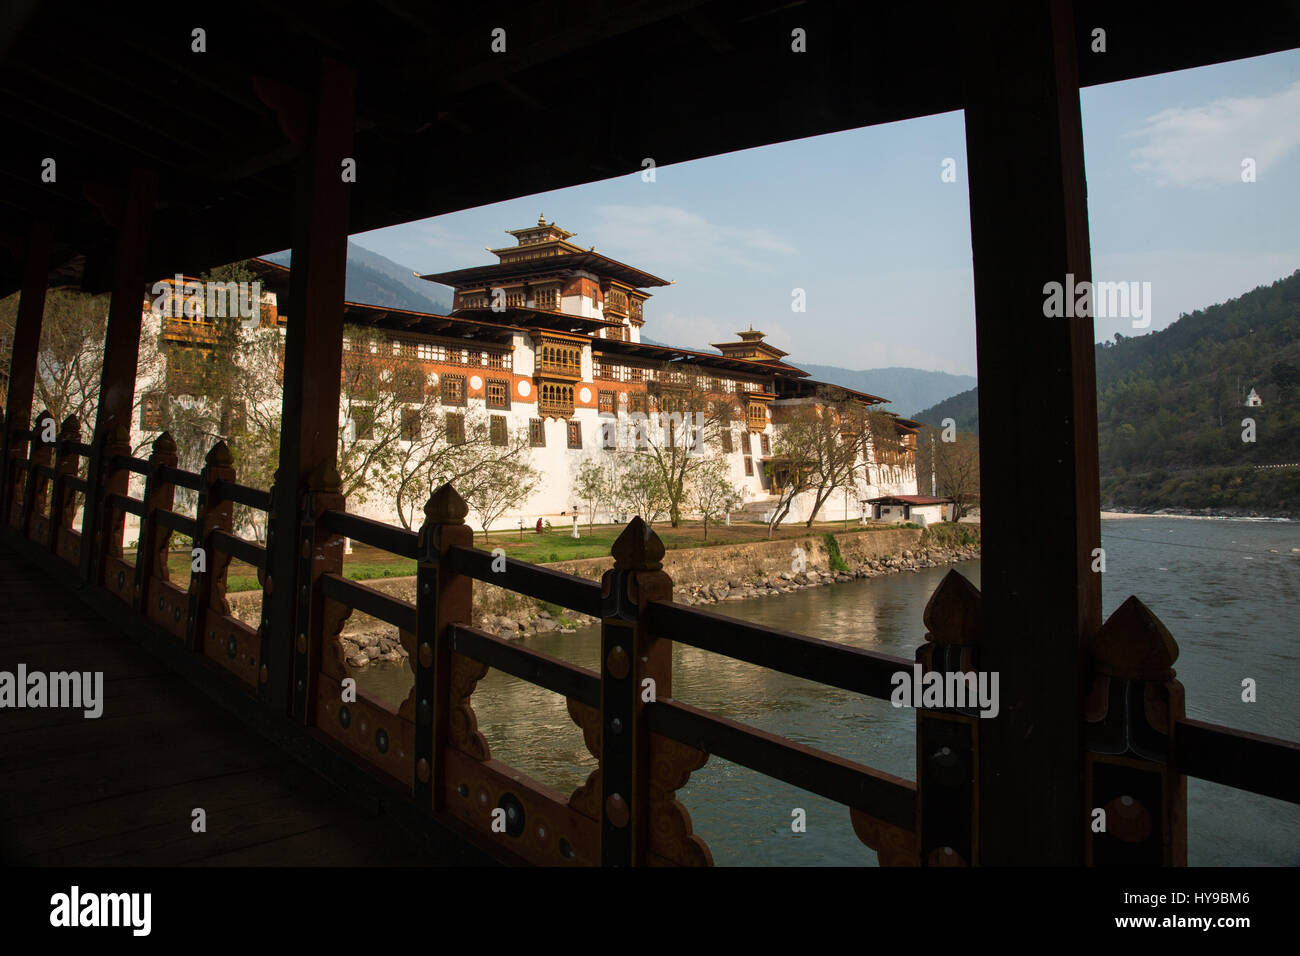 Punakha Dzong from the covered bridge over the Mo Chhu River.  Punakha, Bhutan. - Stock Image